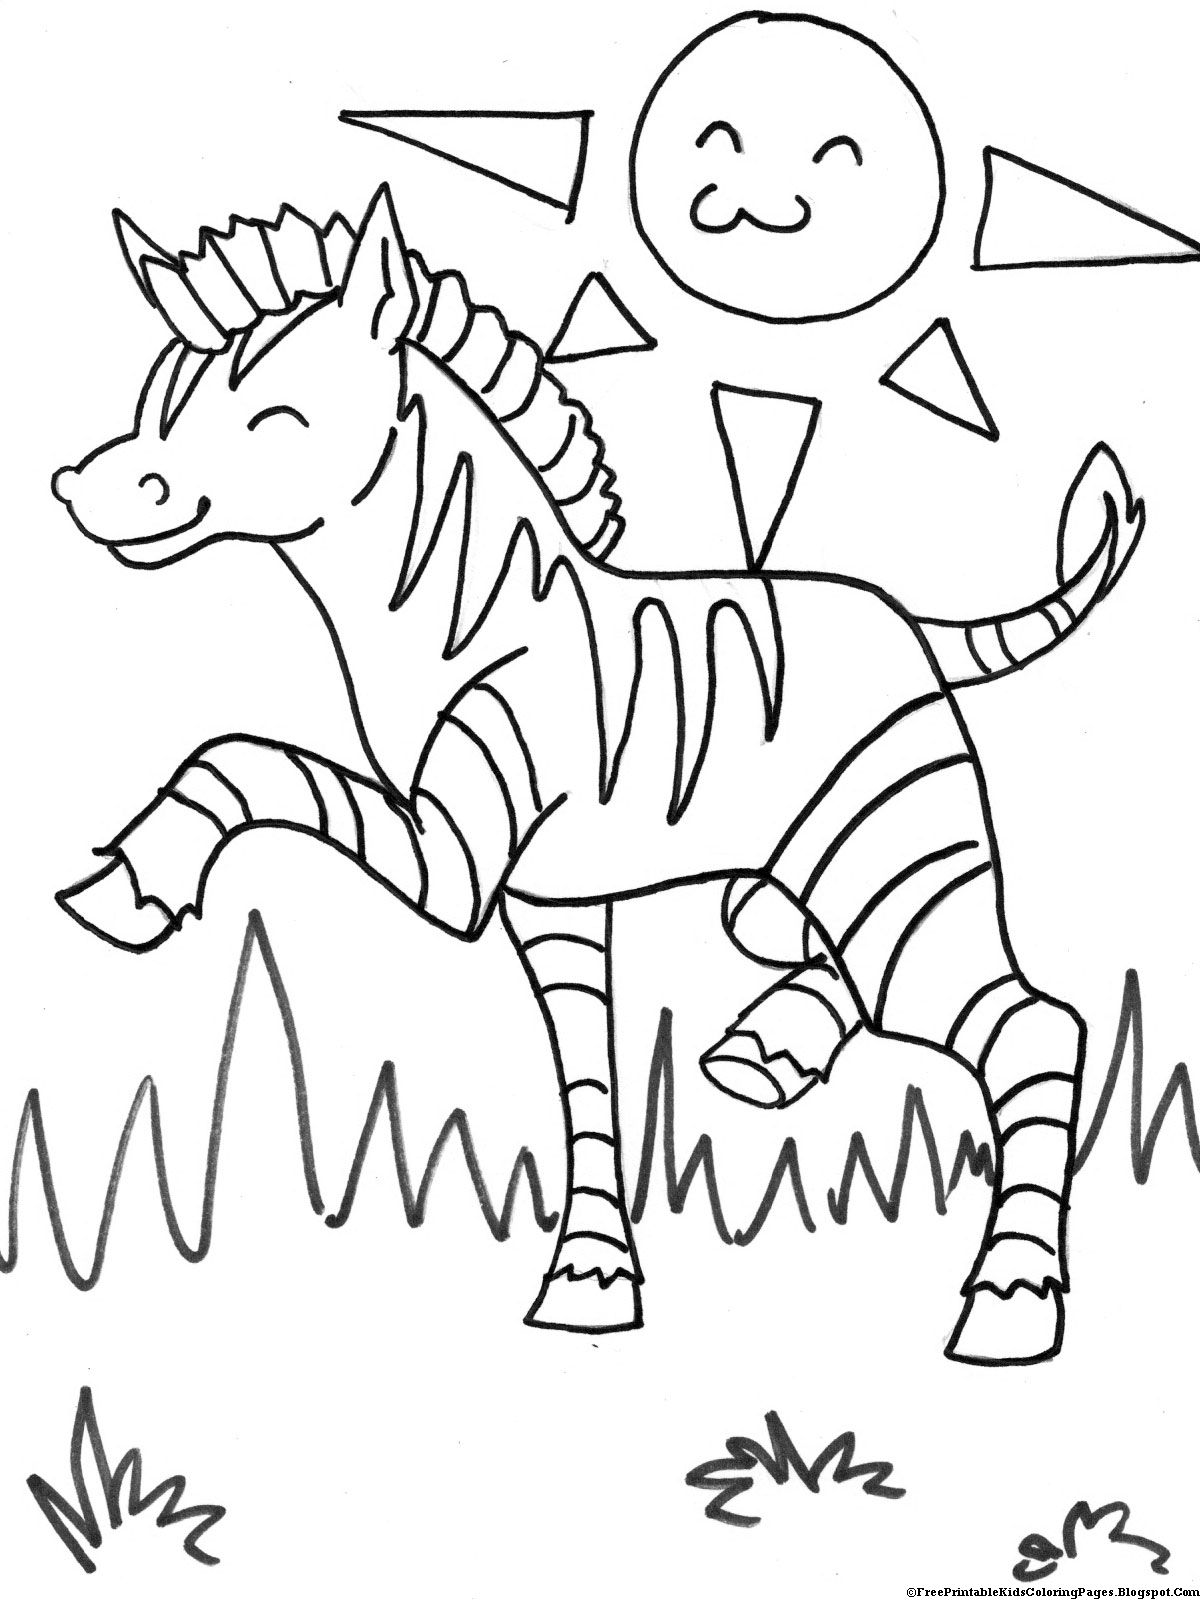 coloring pages for print zebra coloring pages free printable kids coloring pages pages for print coloring 1 1